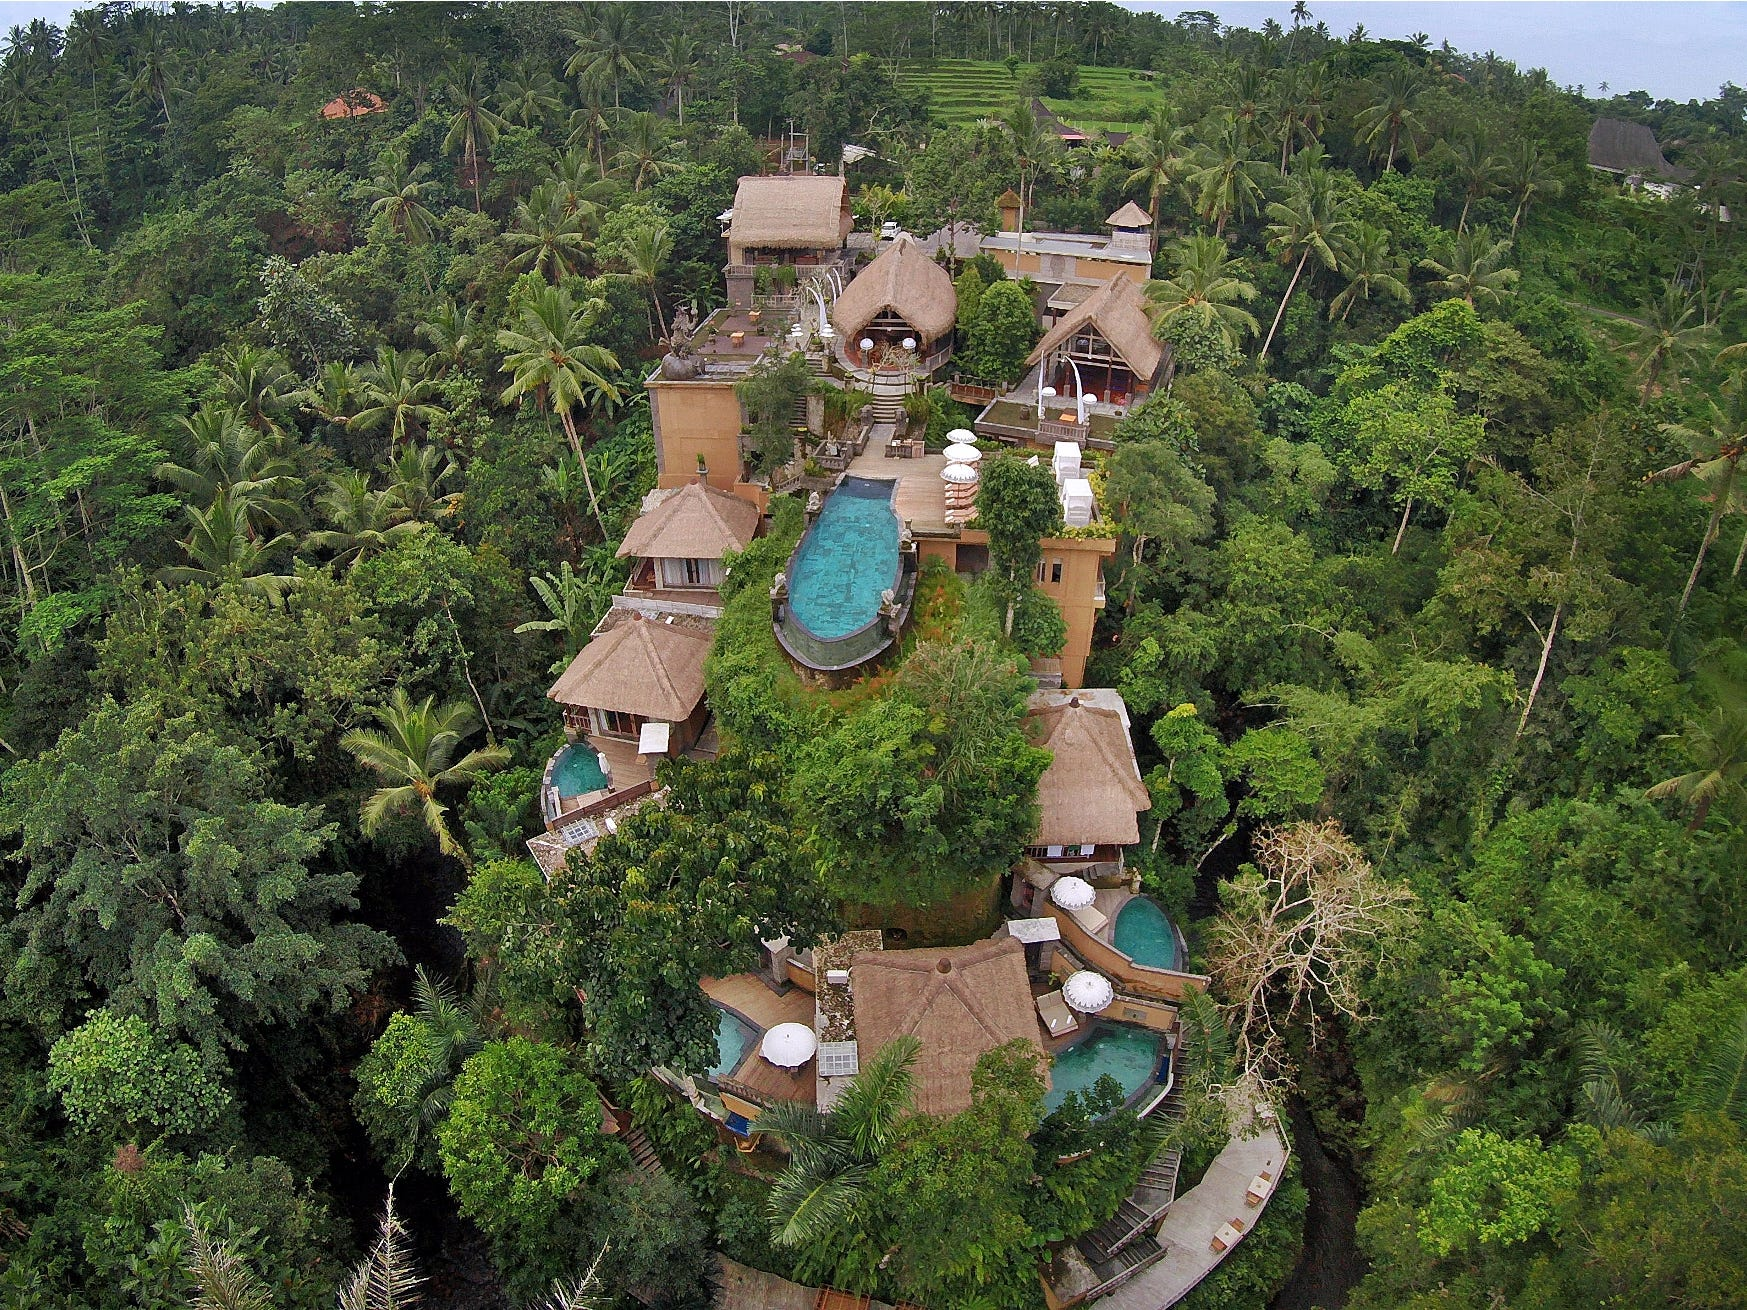 No. 5: The Kayon Resort in Ubud, Indonesia.